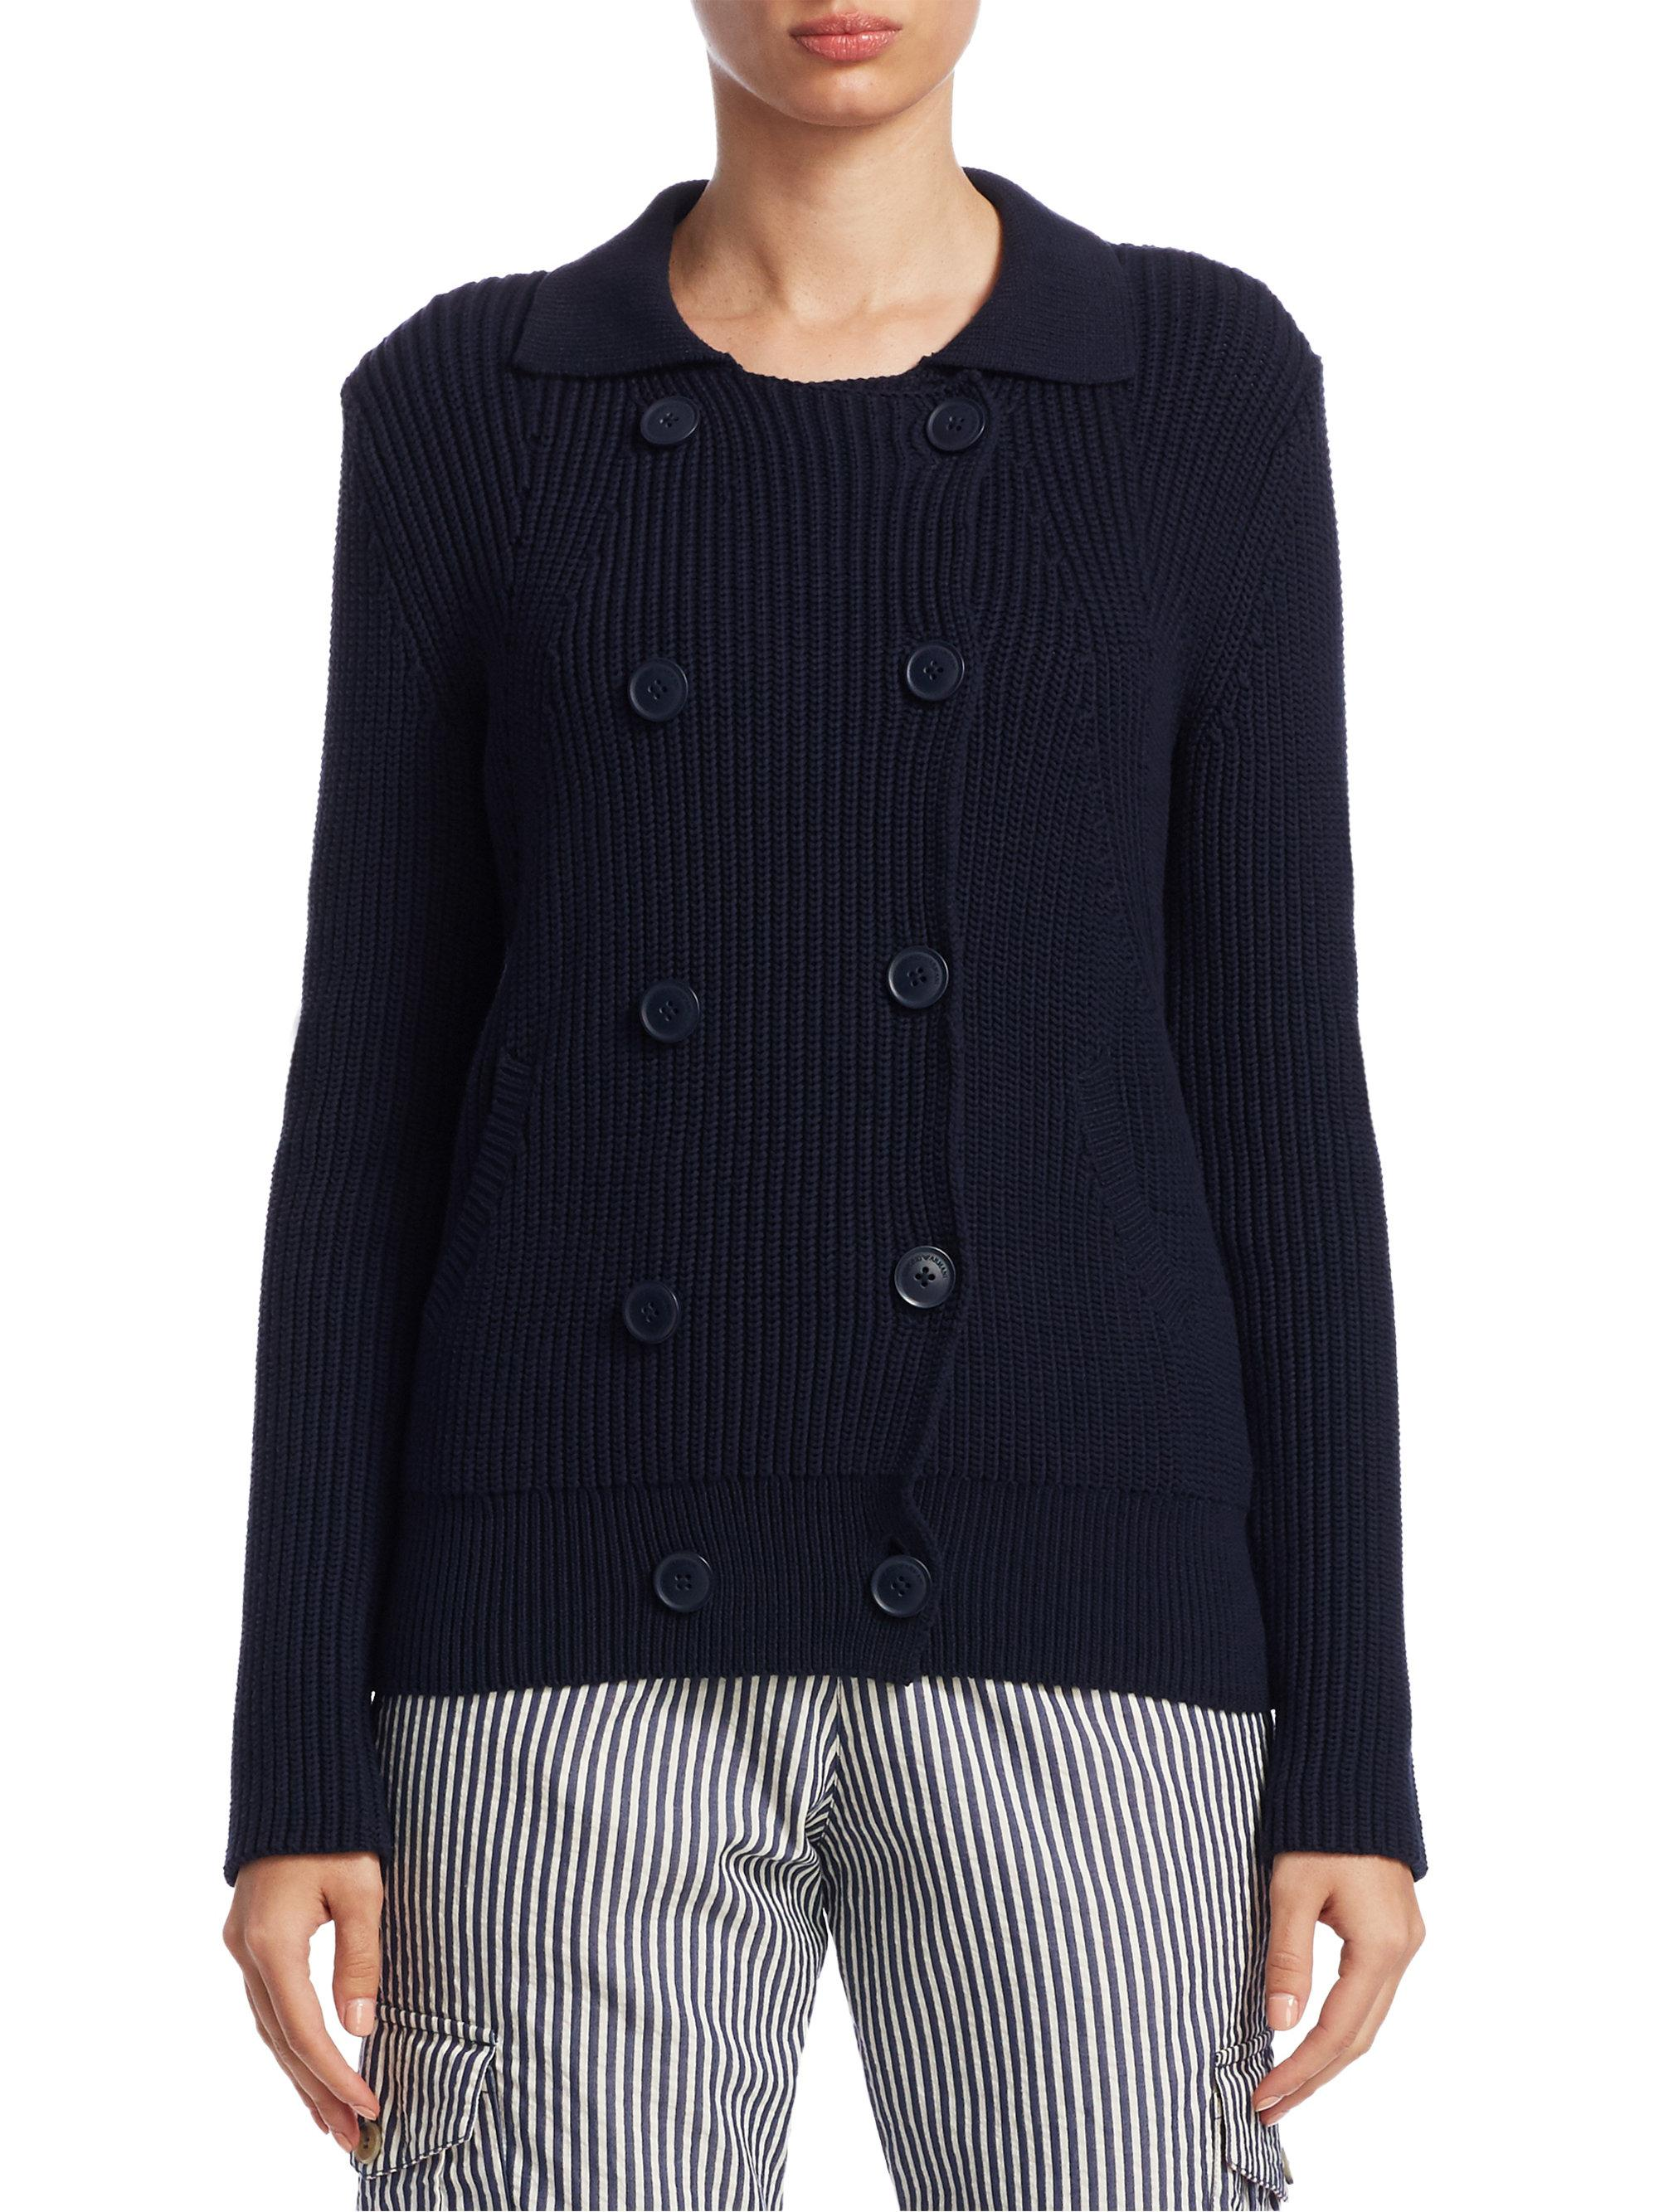 Blue Cable Knit Wool Cardigan With Mastercard Online Cheap Sale Prices 100% Original Cheap Sale Buy Really 6WMhZVAAa